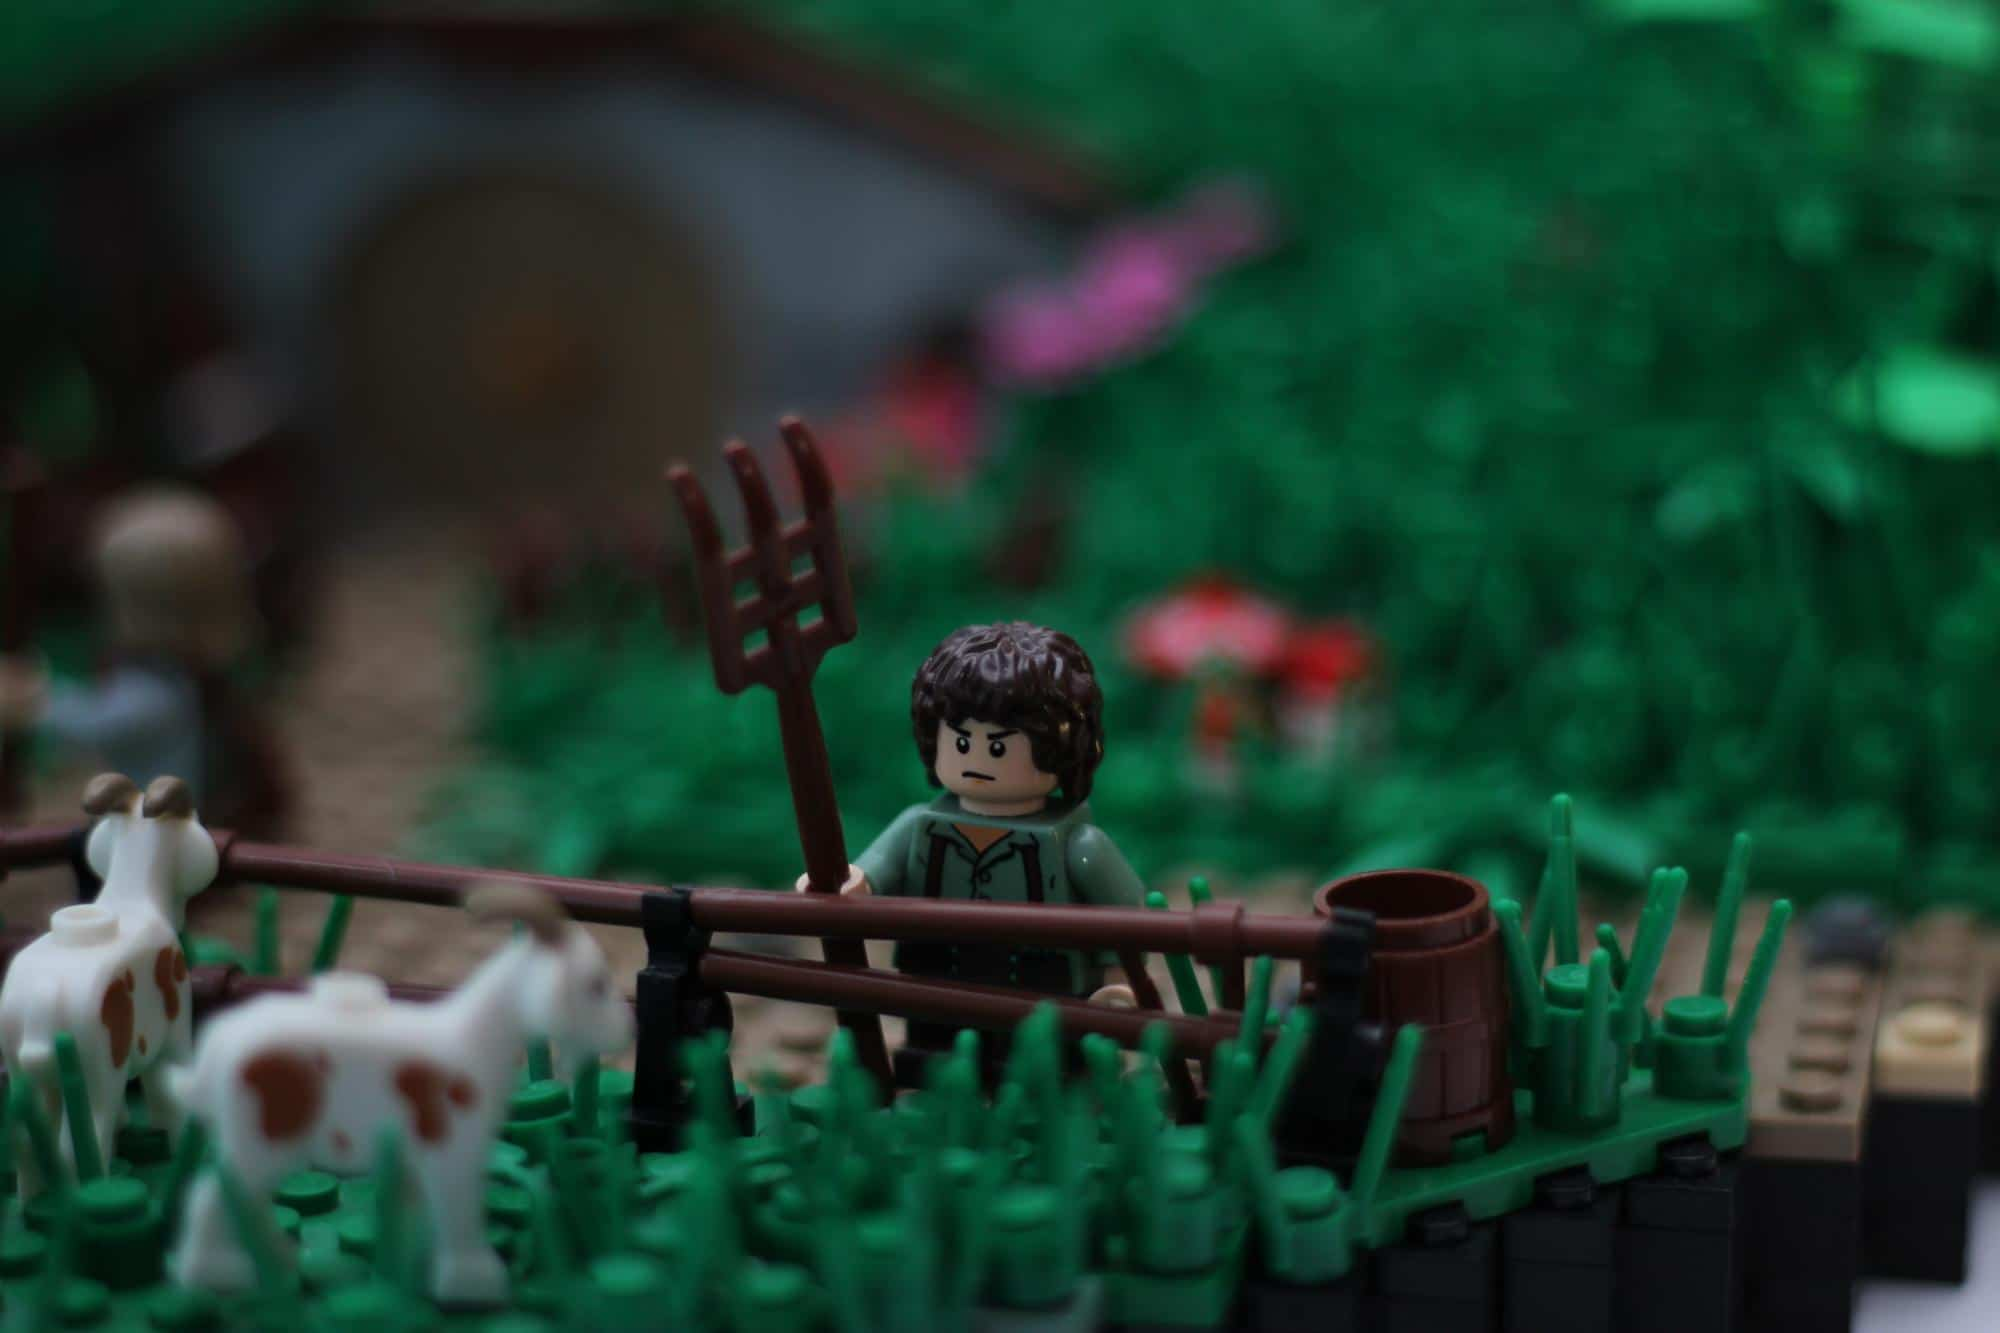 hobbit-hole-lego-build